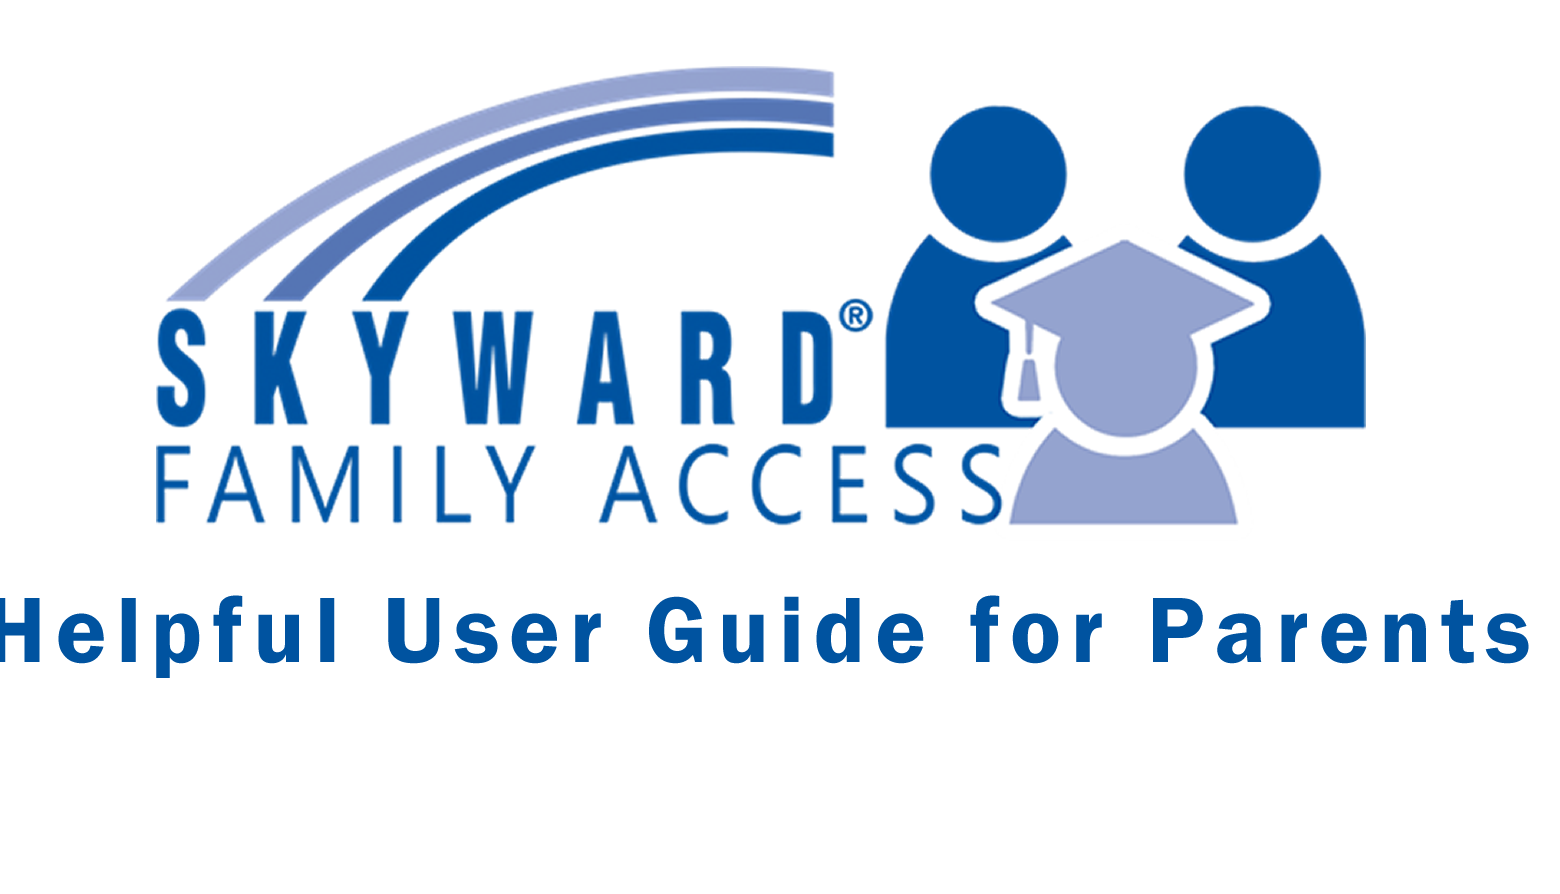 Skyward Family Access Guide